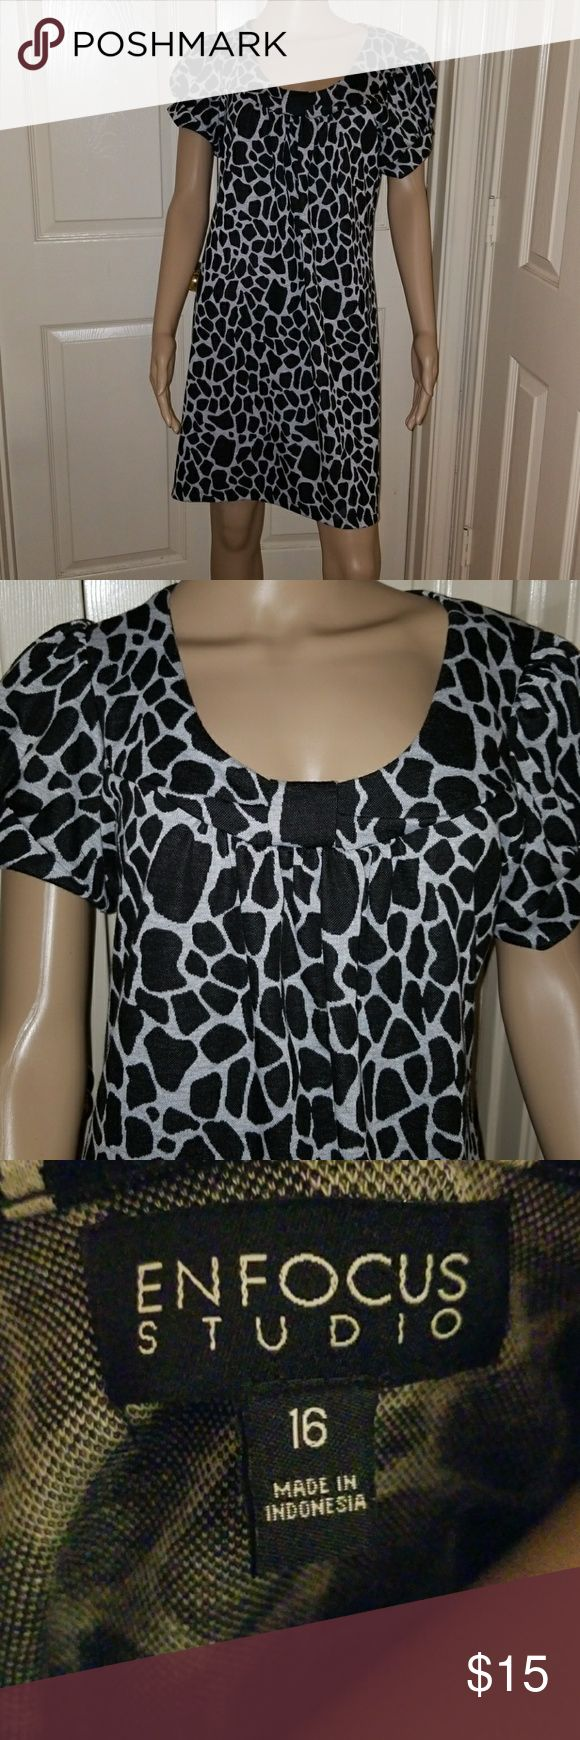 Stunning Black Animal Print Dress Short Sleeve, Loose fit, Above the knee, Size 16, but fits more like a 14. Enfocus Studios Dresses Mini